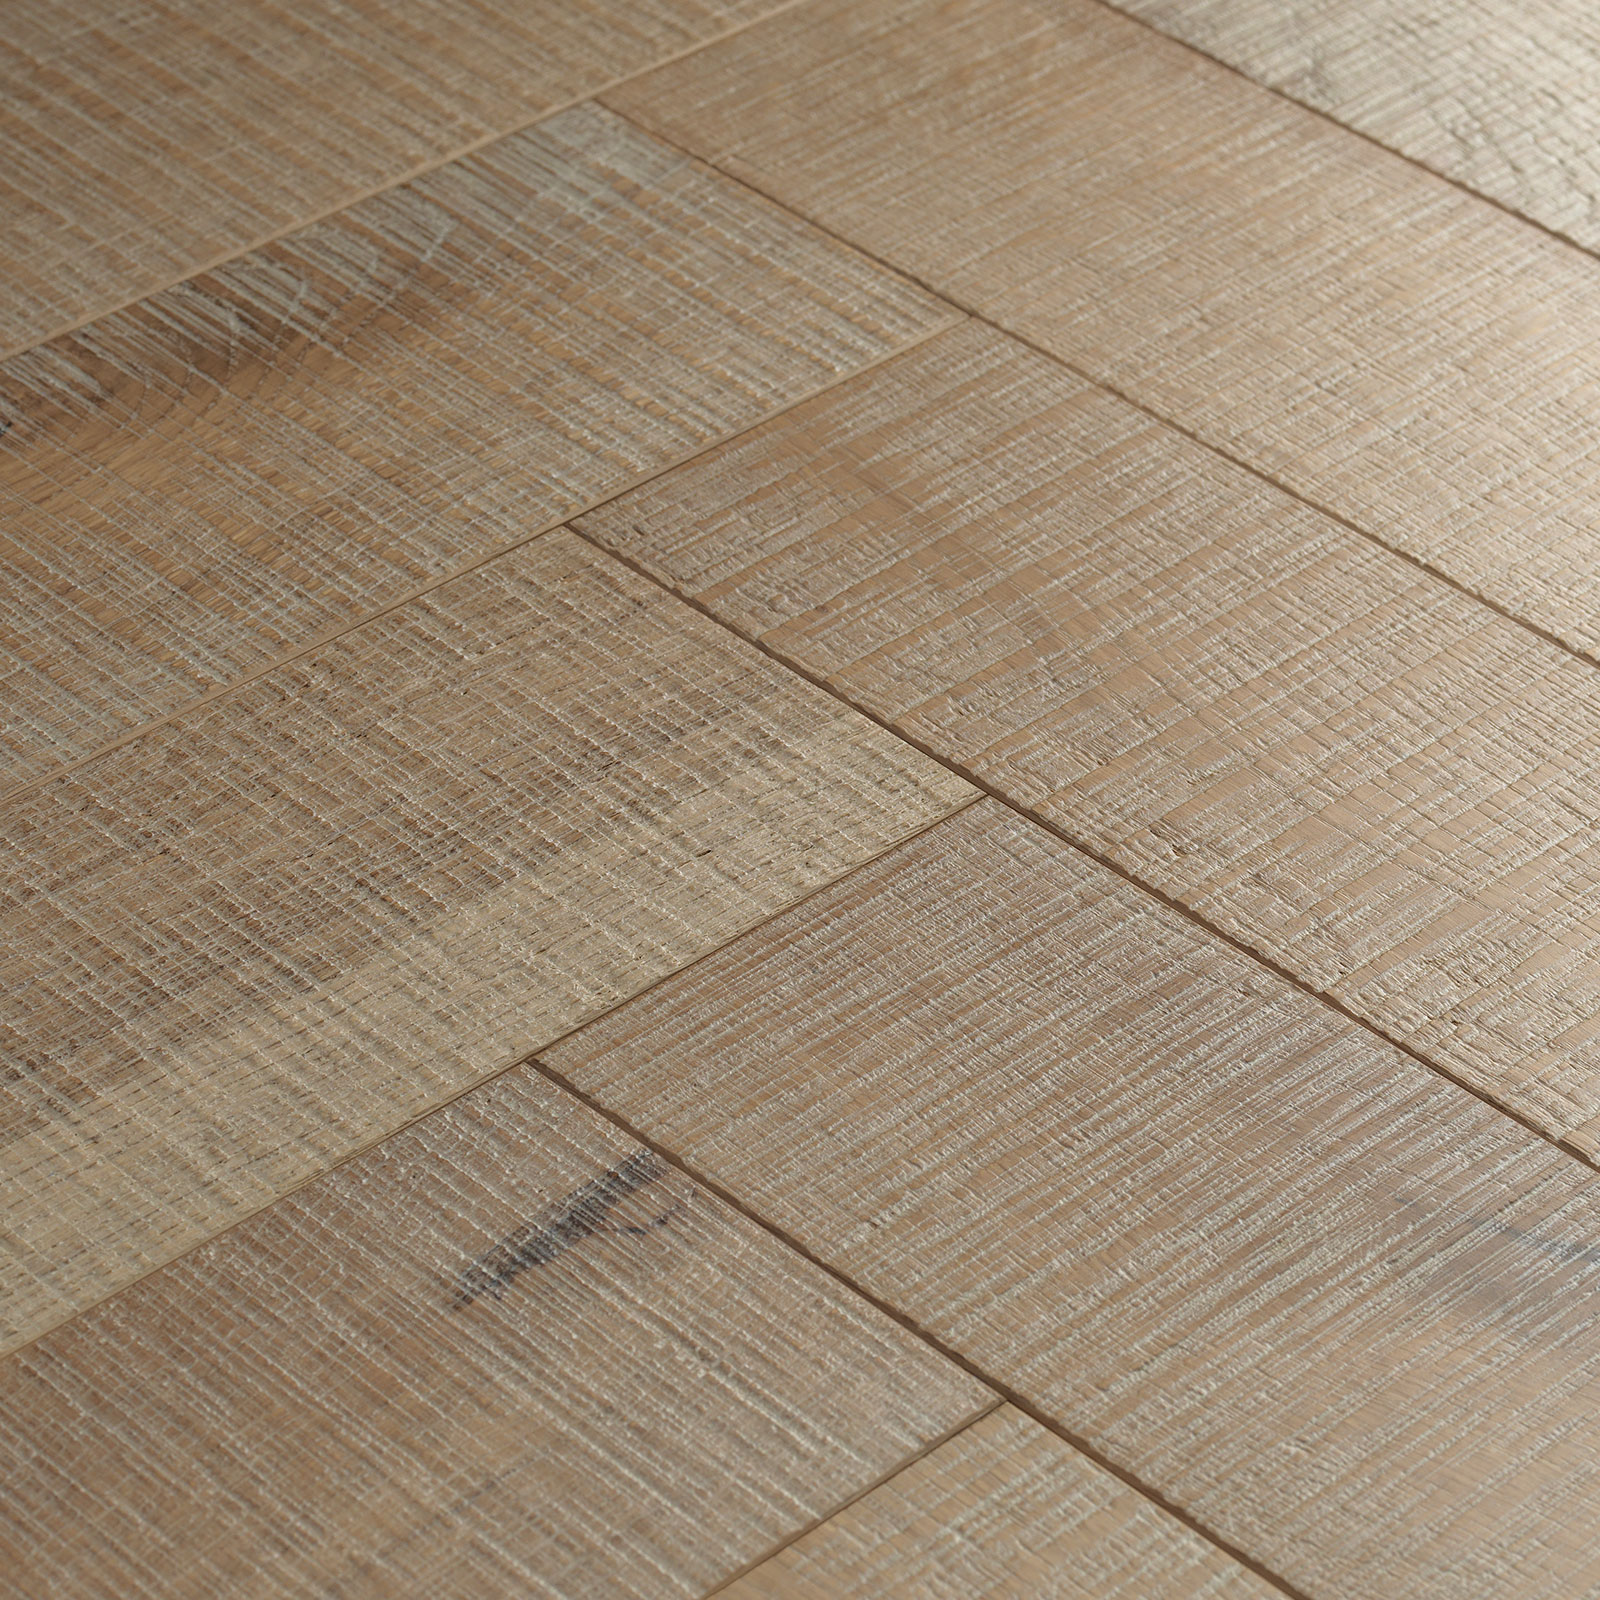 Goodrich-Salted-Oak-swatch.jpg